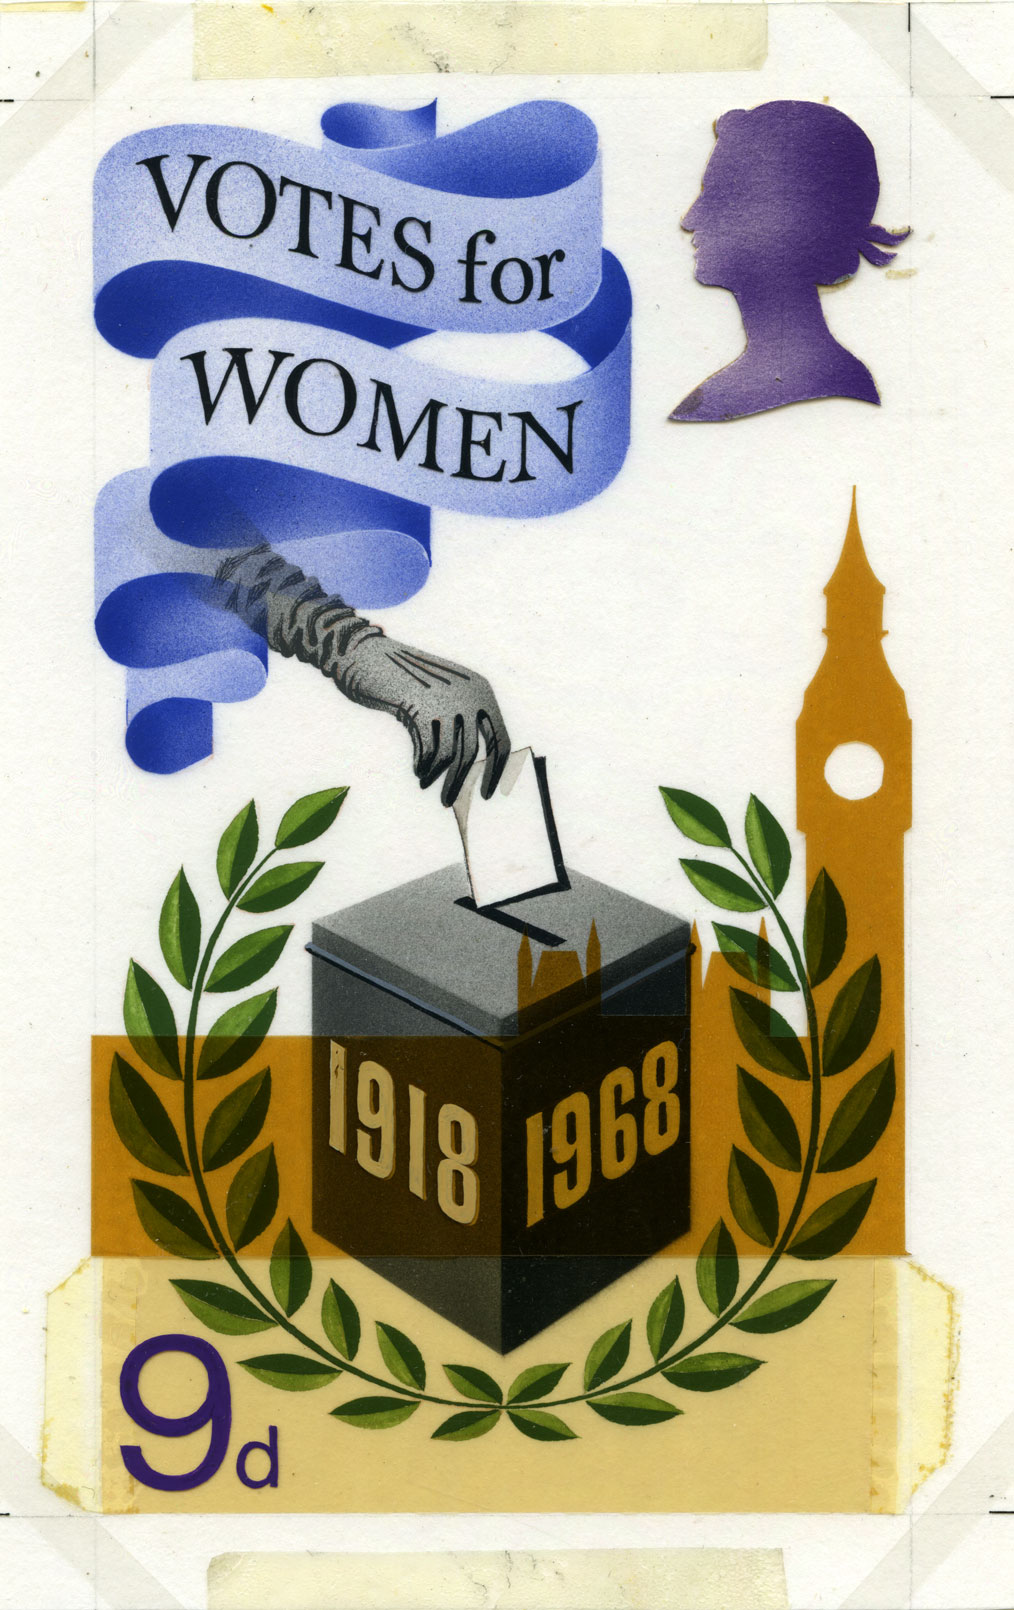 A stamp design by Jeffery Matthews with a female hand putting a ballot into a box.